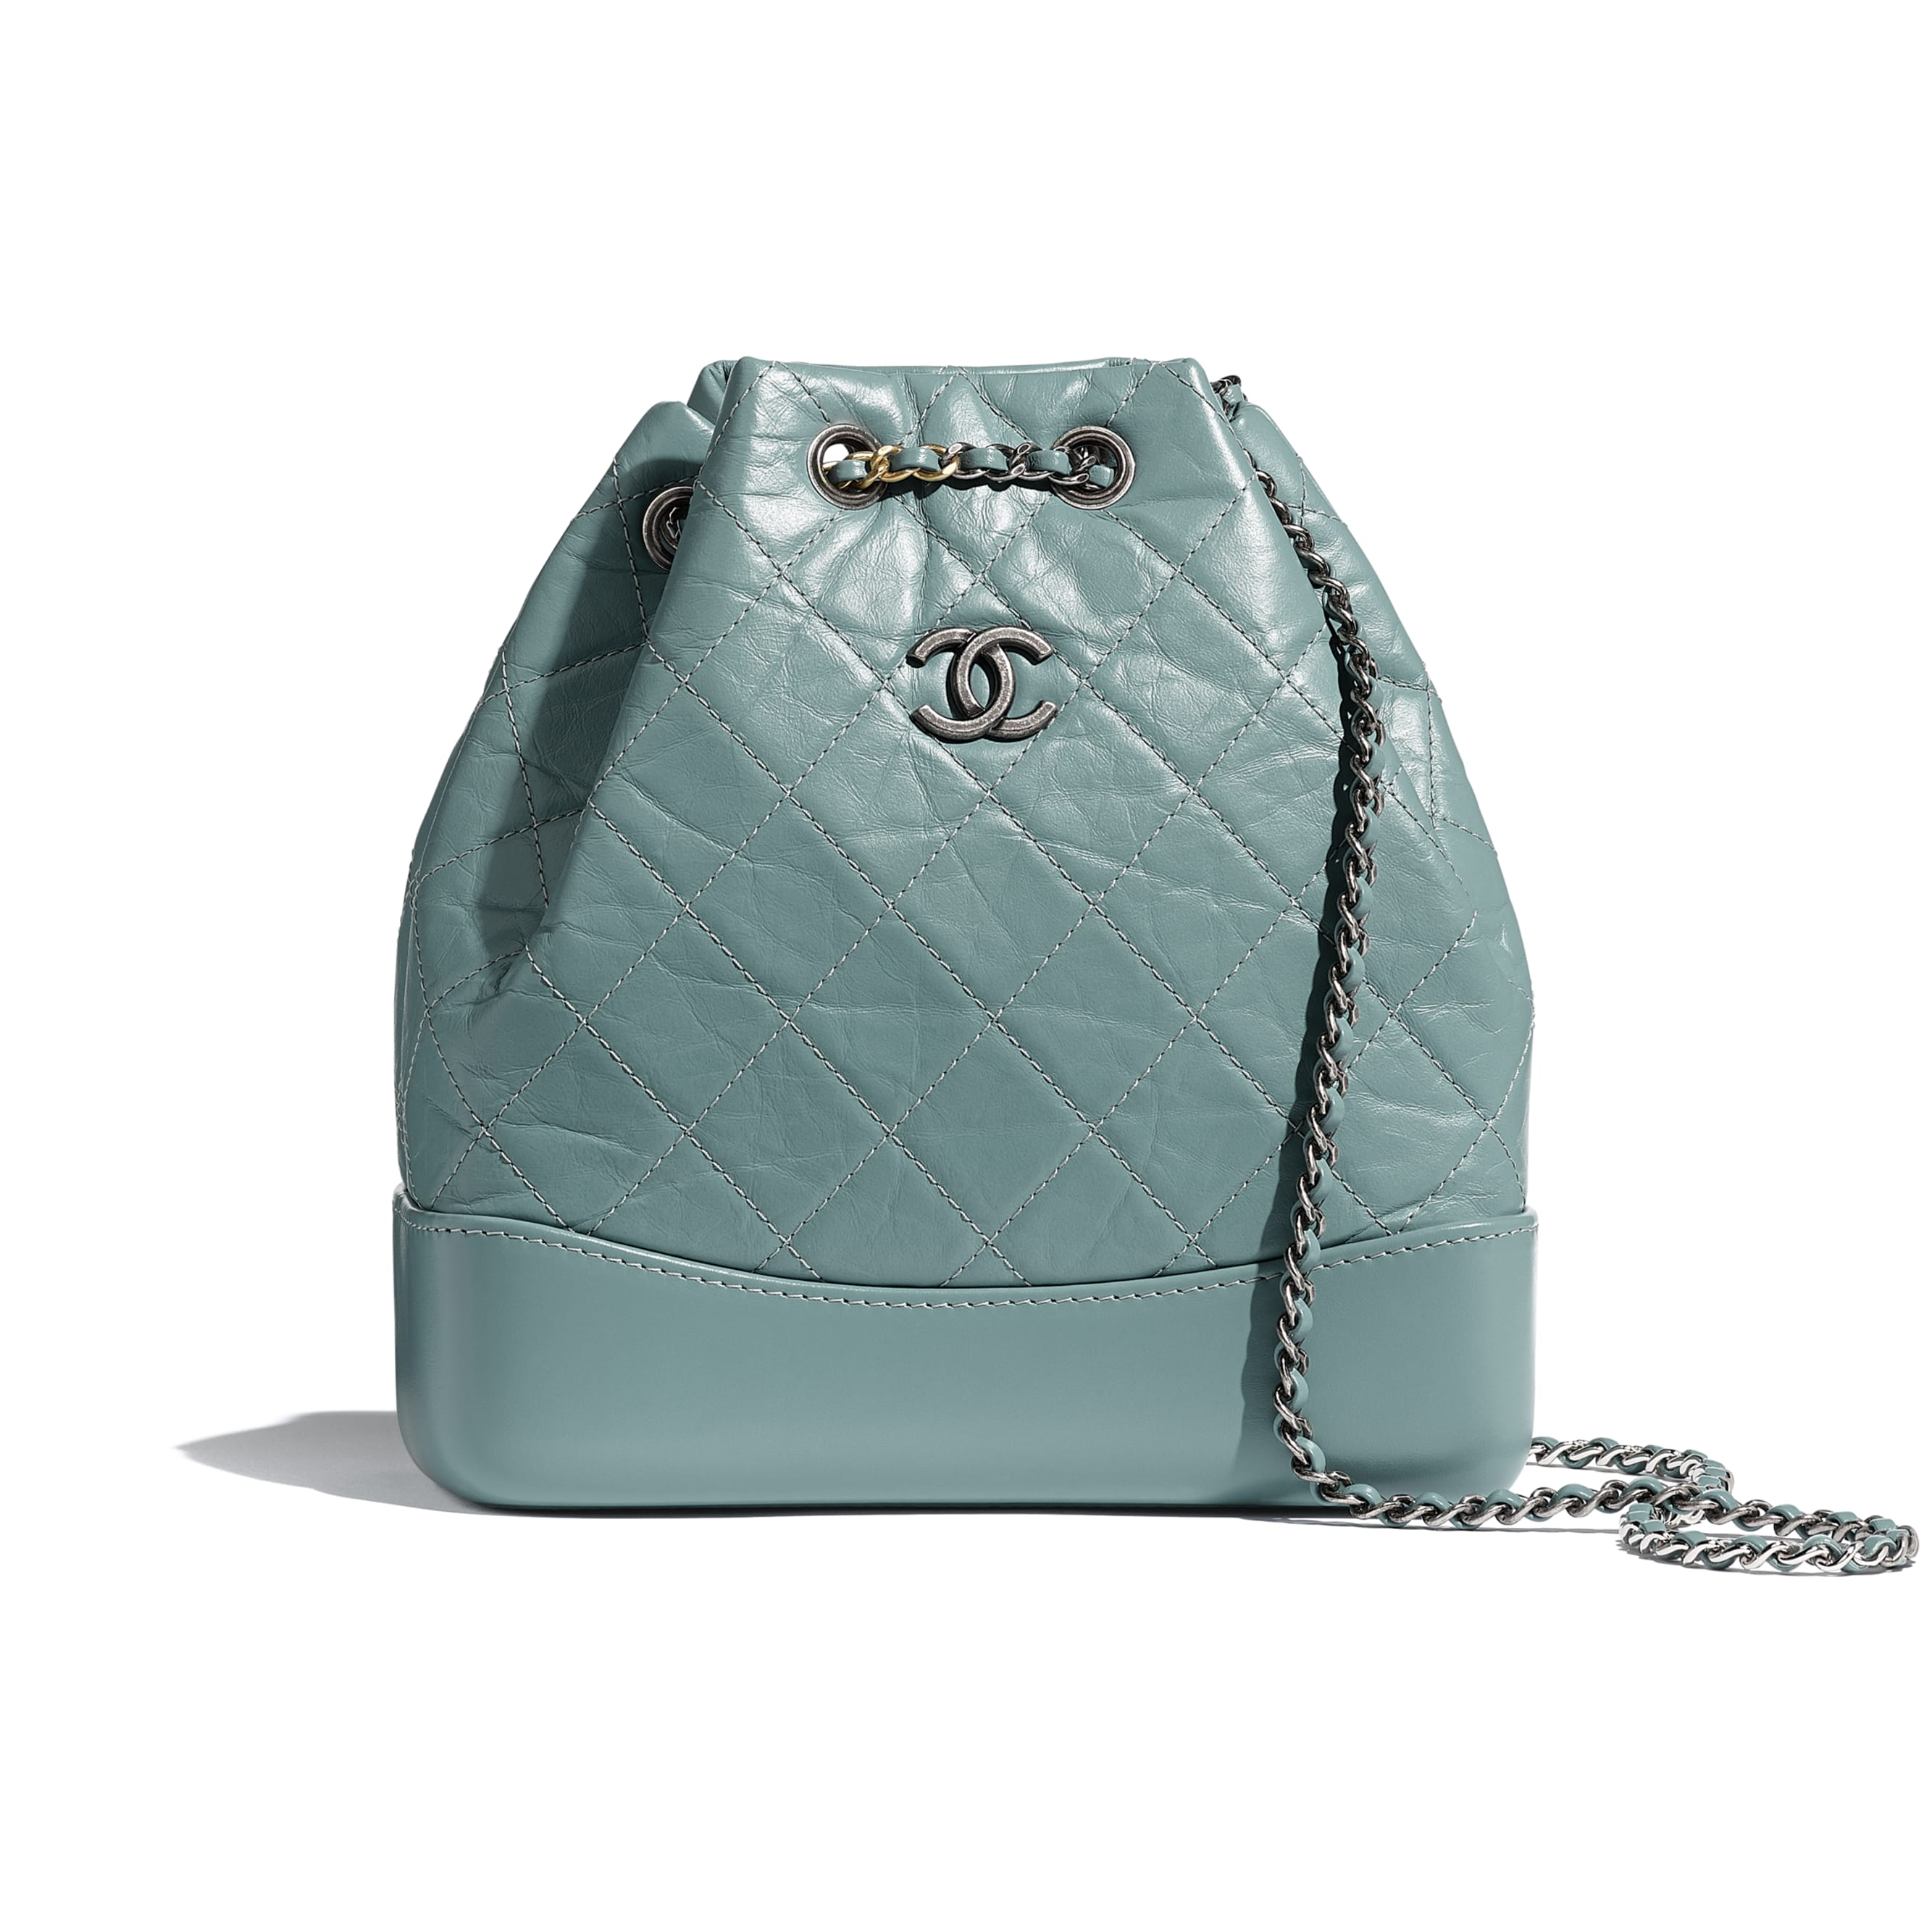 CHANEL'S GABRIELLE Small Backpack - Blue - Aged Calfskin, Smooth Calfskin, Gold-Tone, Silver-Tone & Ruthenium-Finish Metal - CHANEL - Default view - see standard sized version